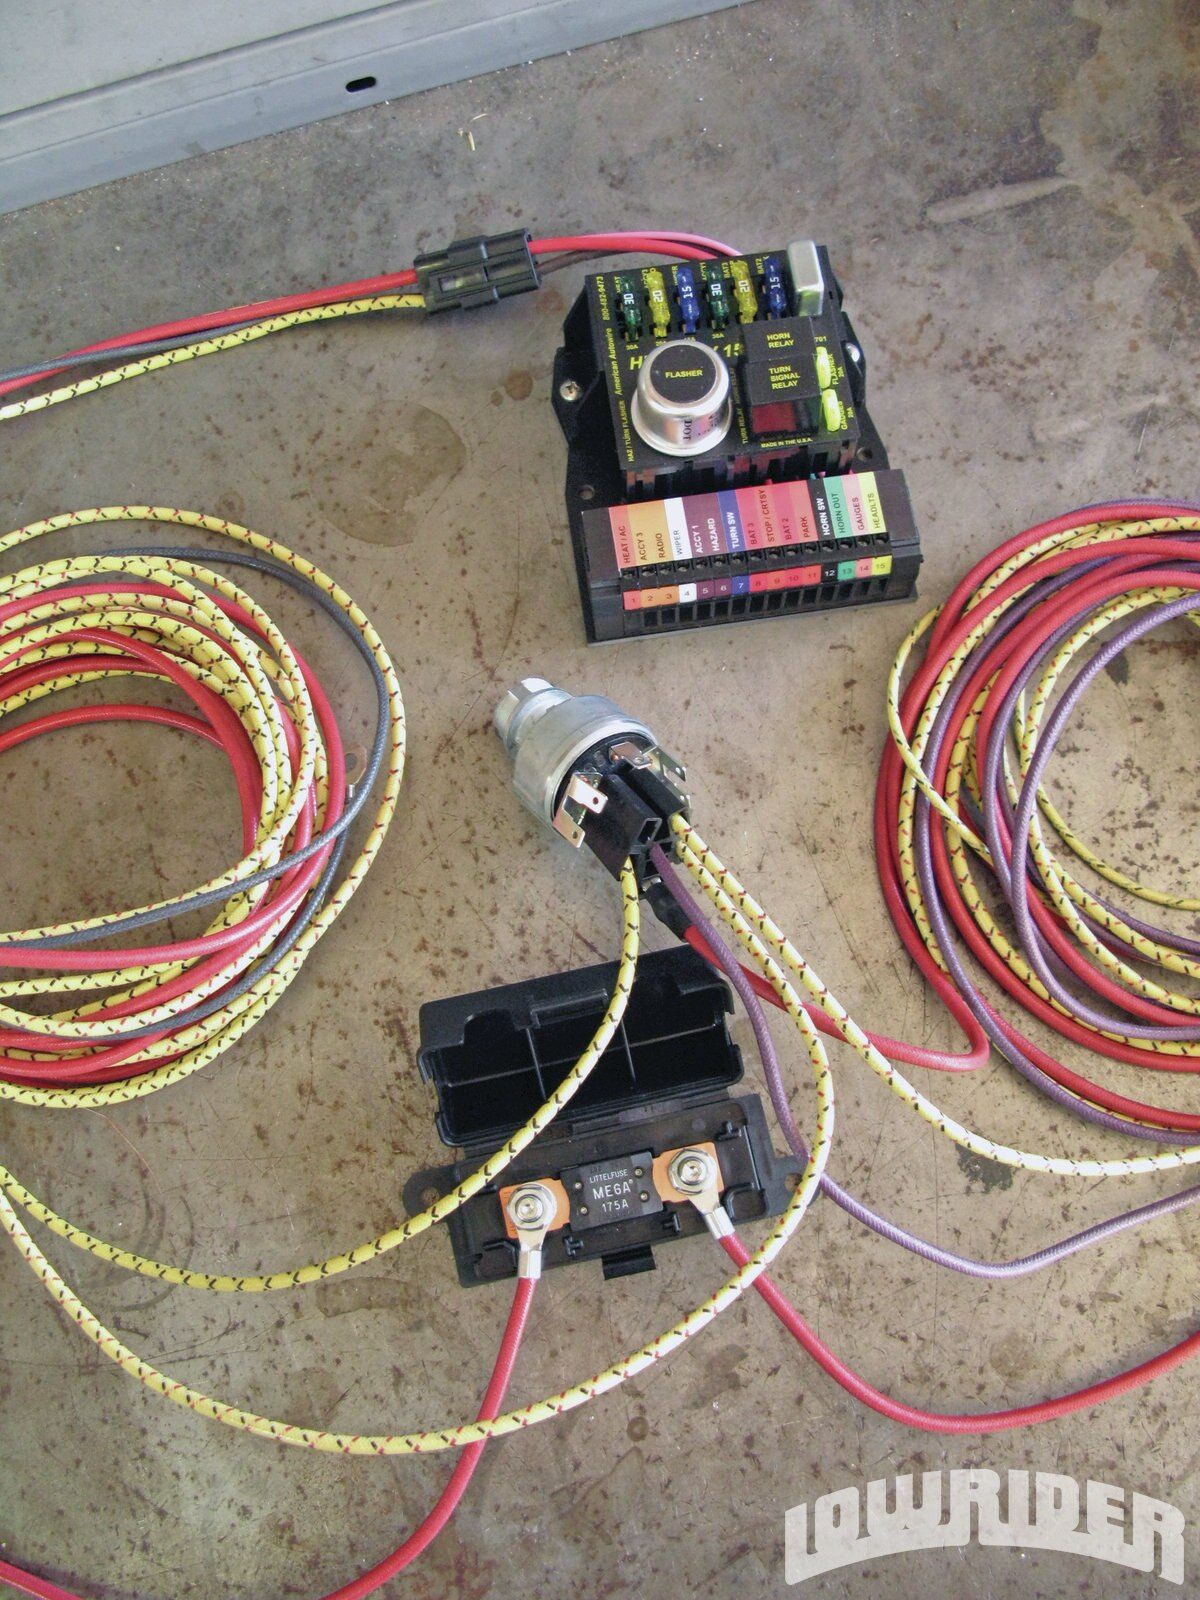 1304 lrmp 02 o american autowire highway 15 wiring wiring american autowire highway 15 nostalgia wiring kit lowrider magazine highway 22 wiring diagram at aneh.co